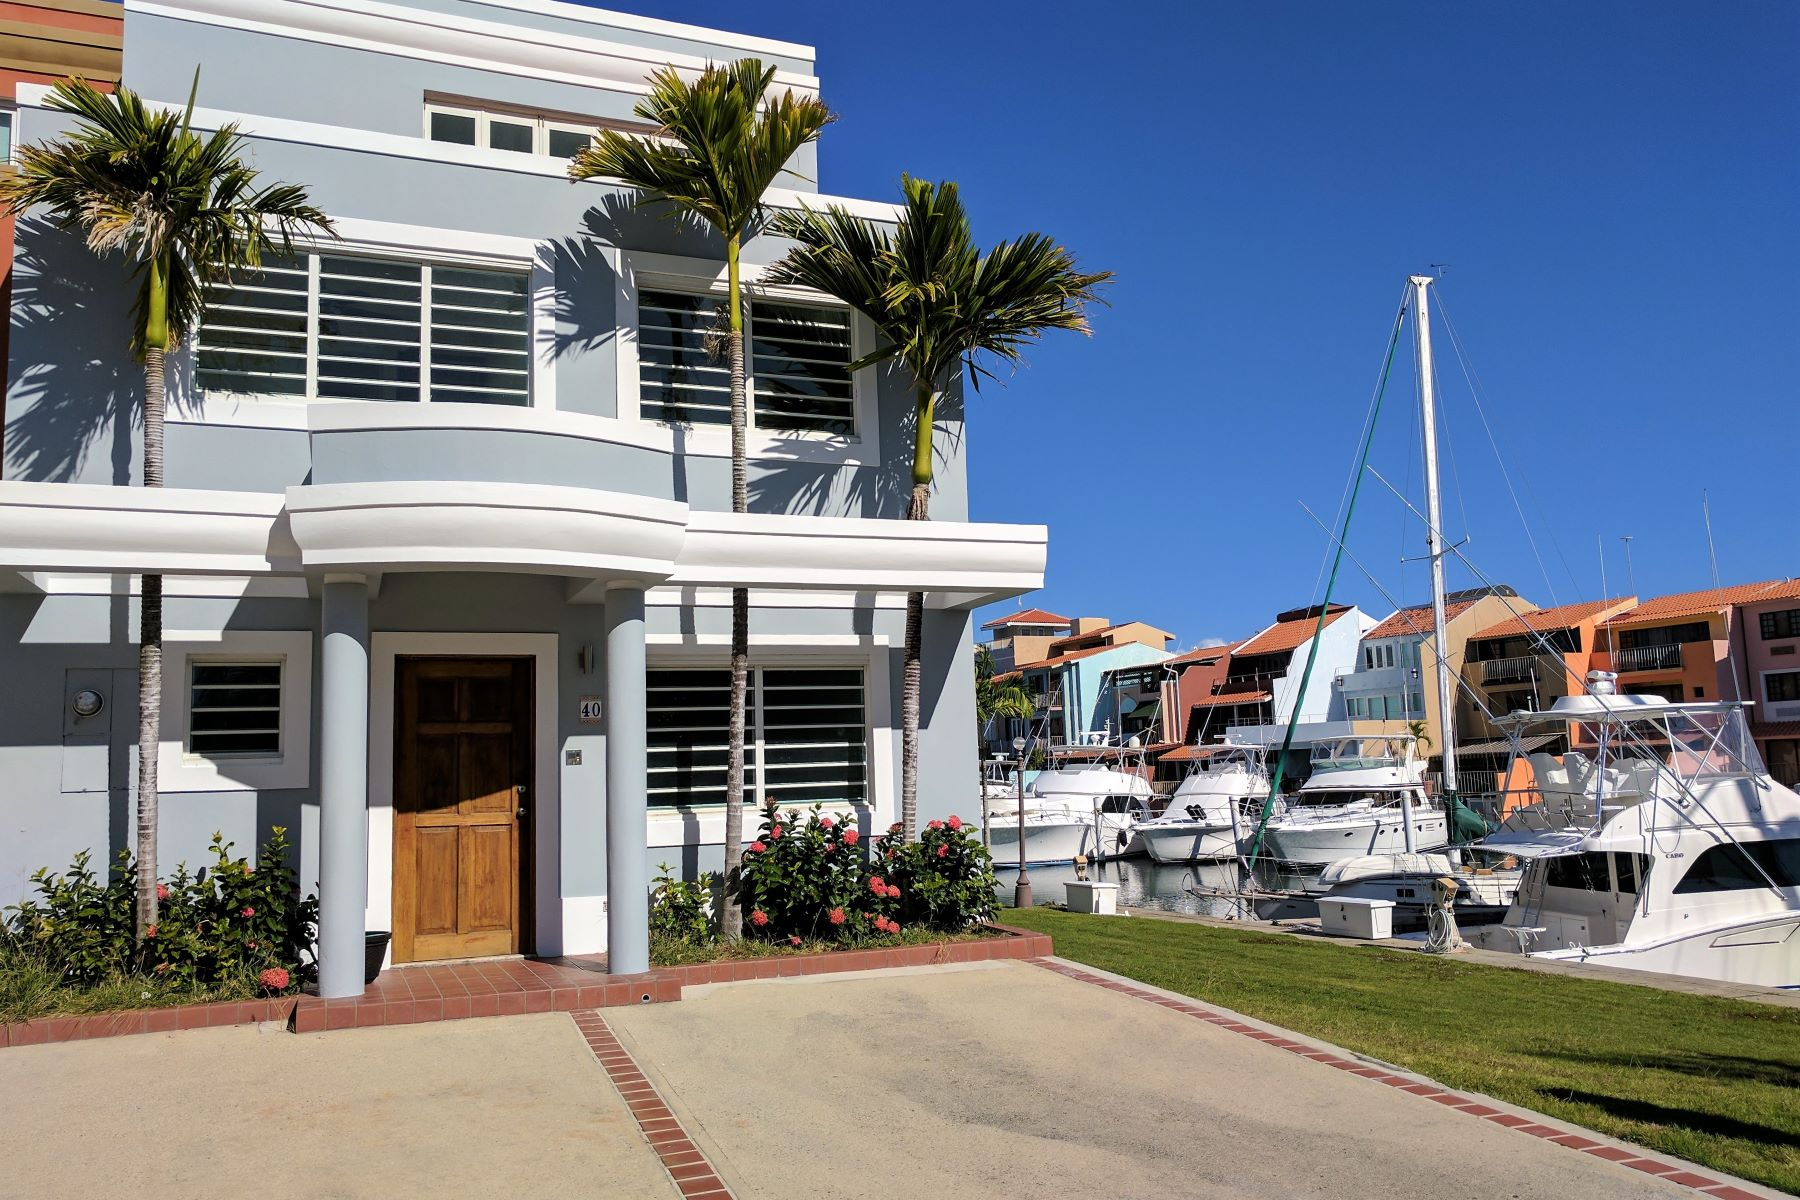 Townhouse for Sale at Waterfront Boaters Townhome at Peninsula 40 Peninsula de San Juan Palmas Del Mar, 00791 Puerto Rico